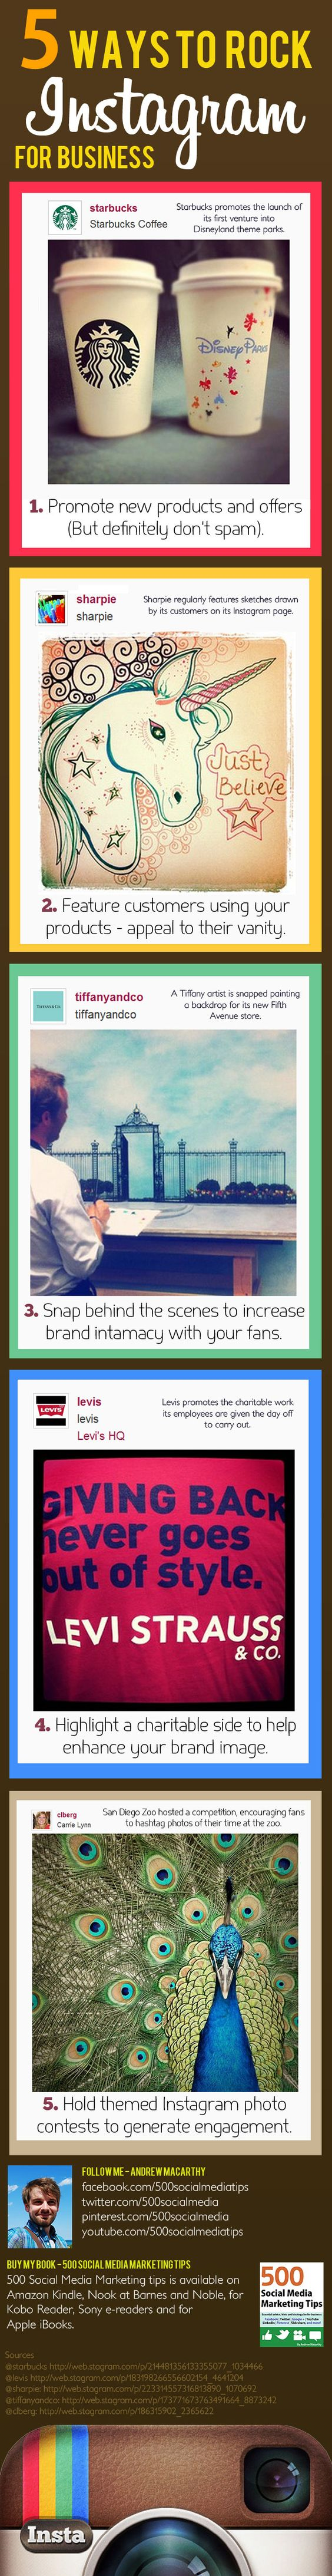 5 ways to rock Instagram for business #infographic